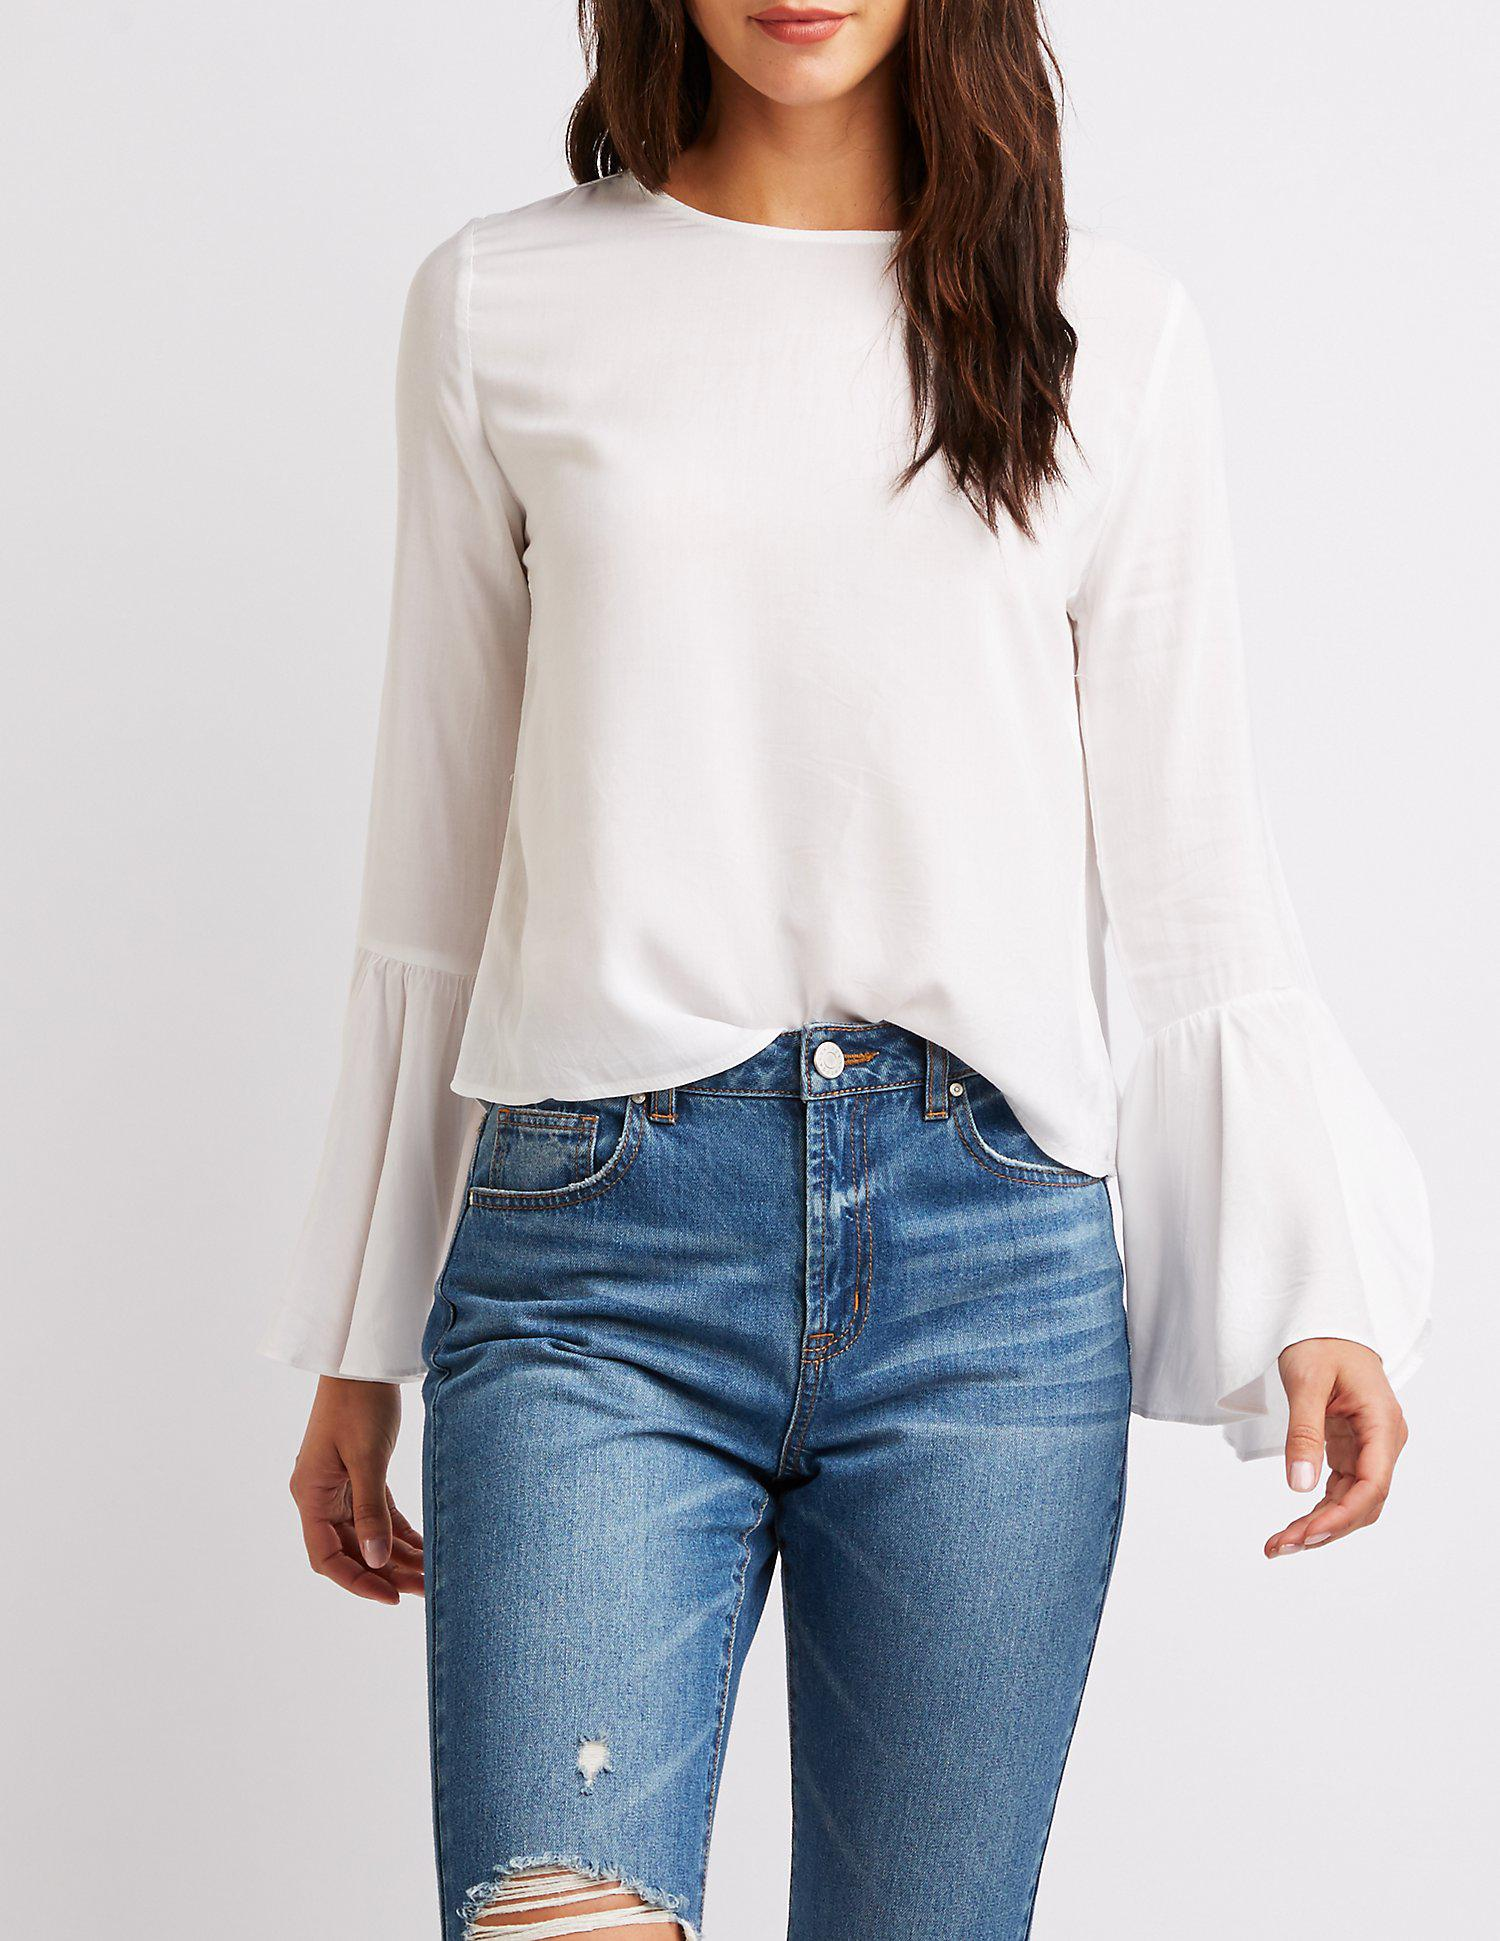 Lyst - Charlotte Russe Long Bell Sleeve Top in White